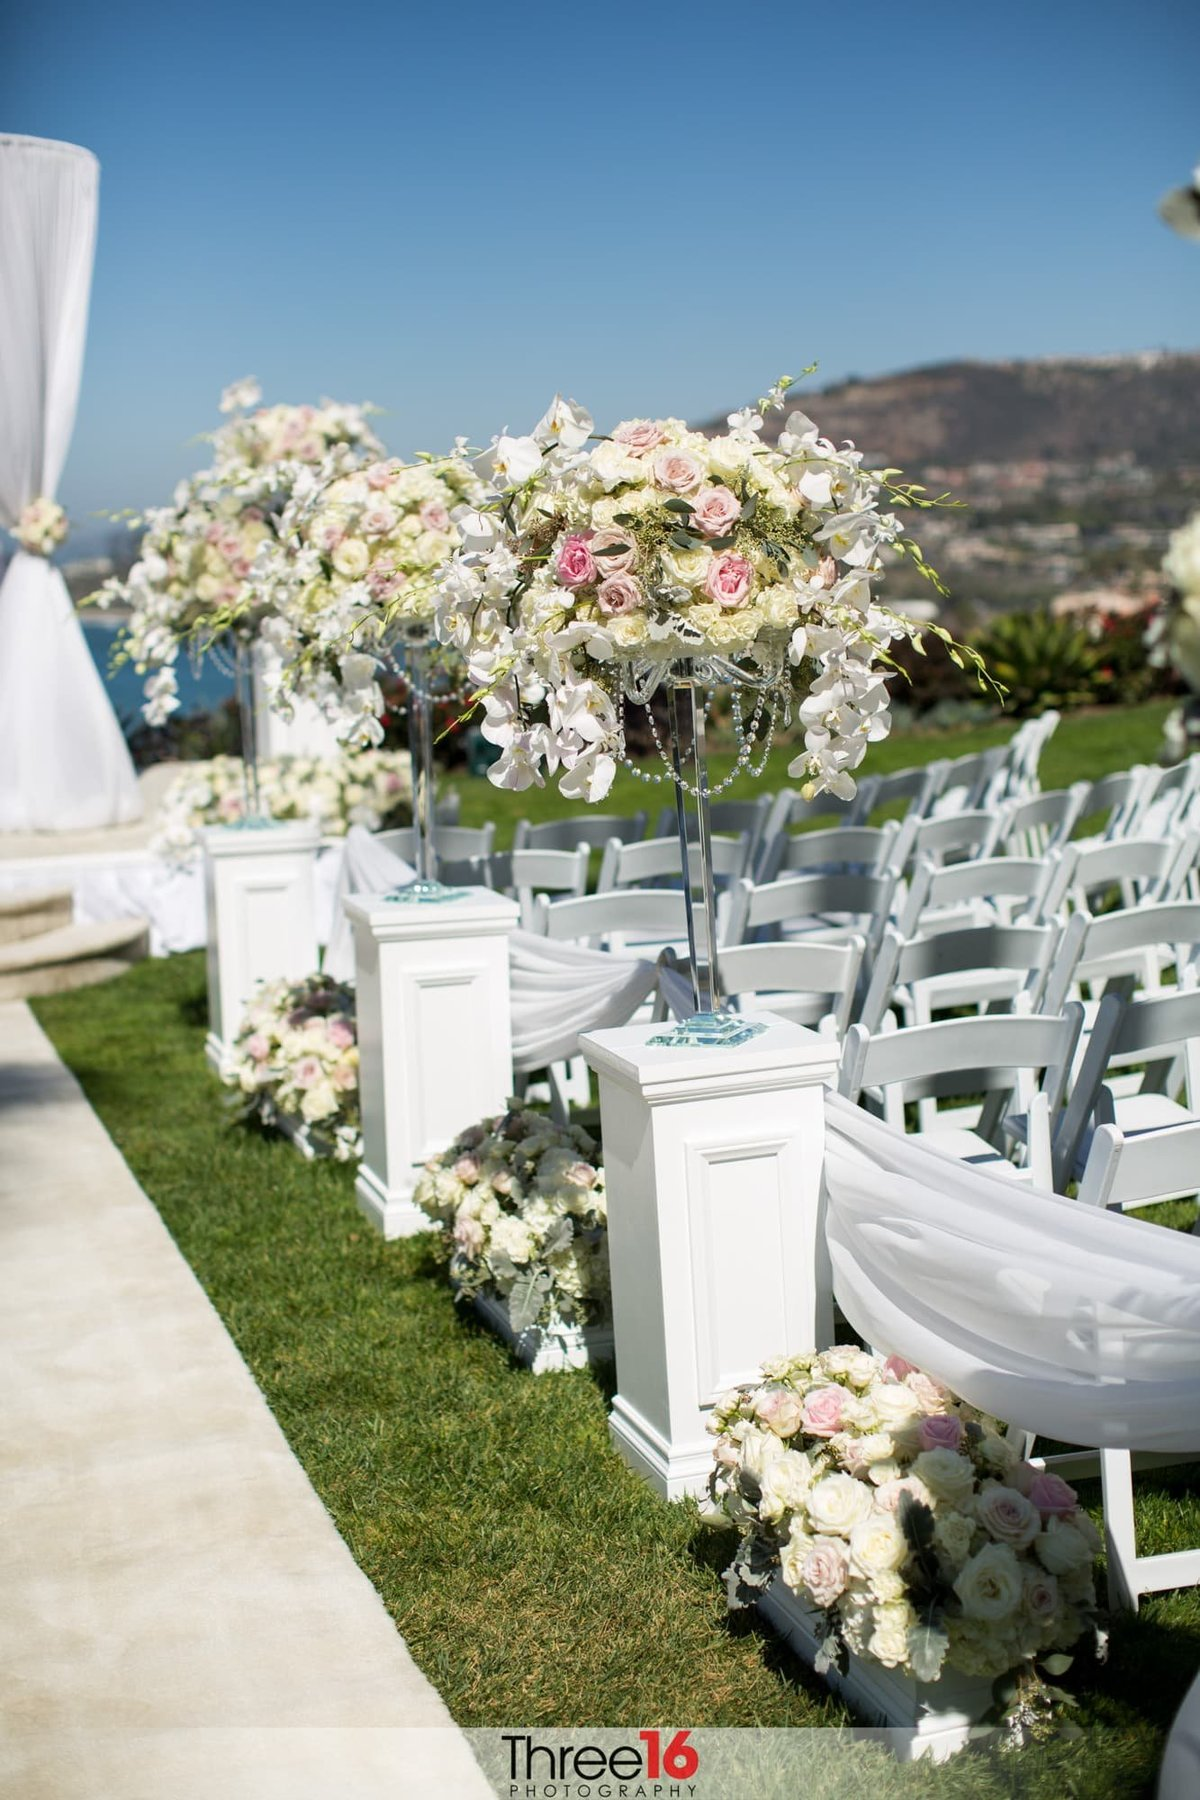 Floral arraignments amongst the wedding ceremony seating